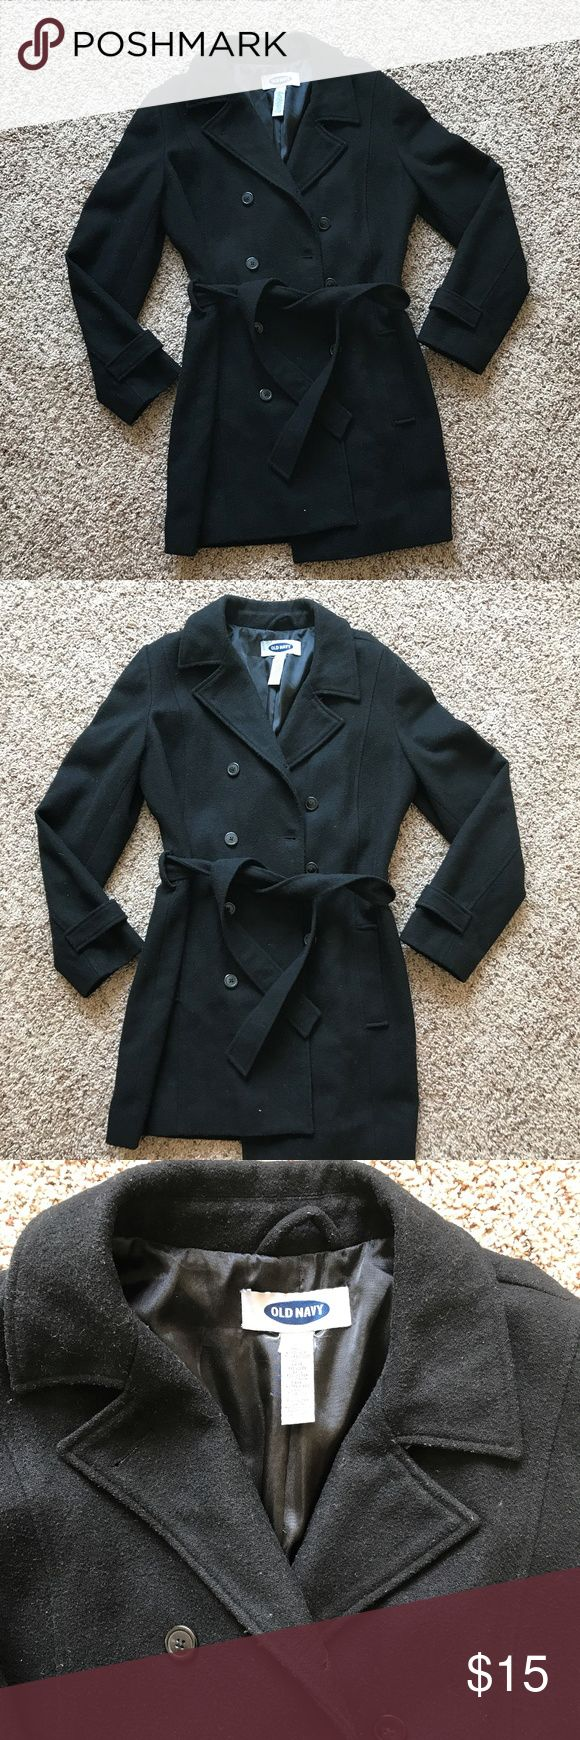 Old Navy Pea Coat Size LARGE.   Black Old Navy Pea Coat.   USED and shows normal wear Old Navy Jackets & Coats Pea Coats